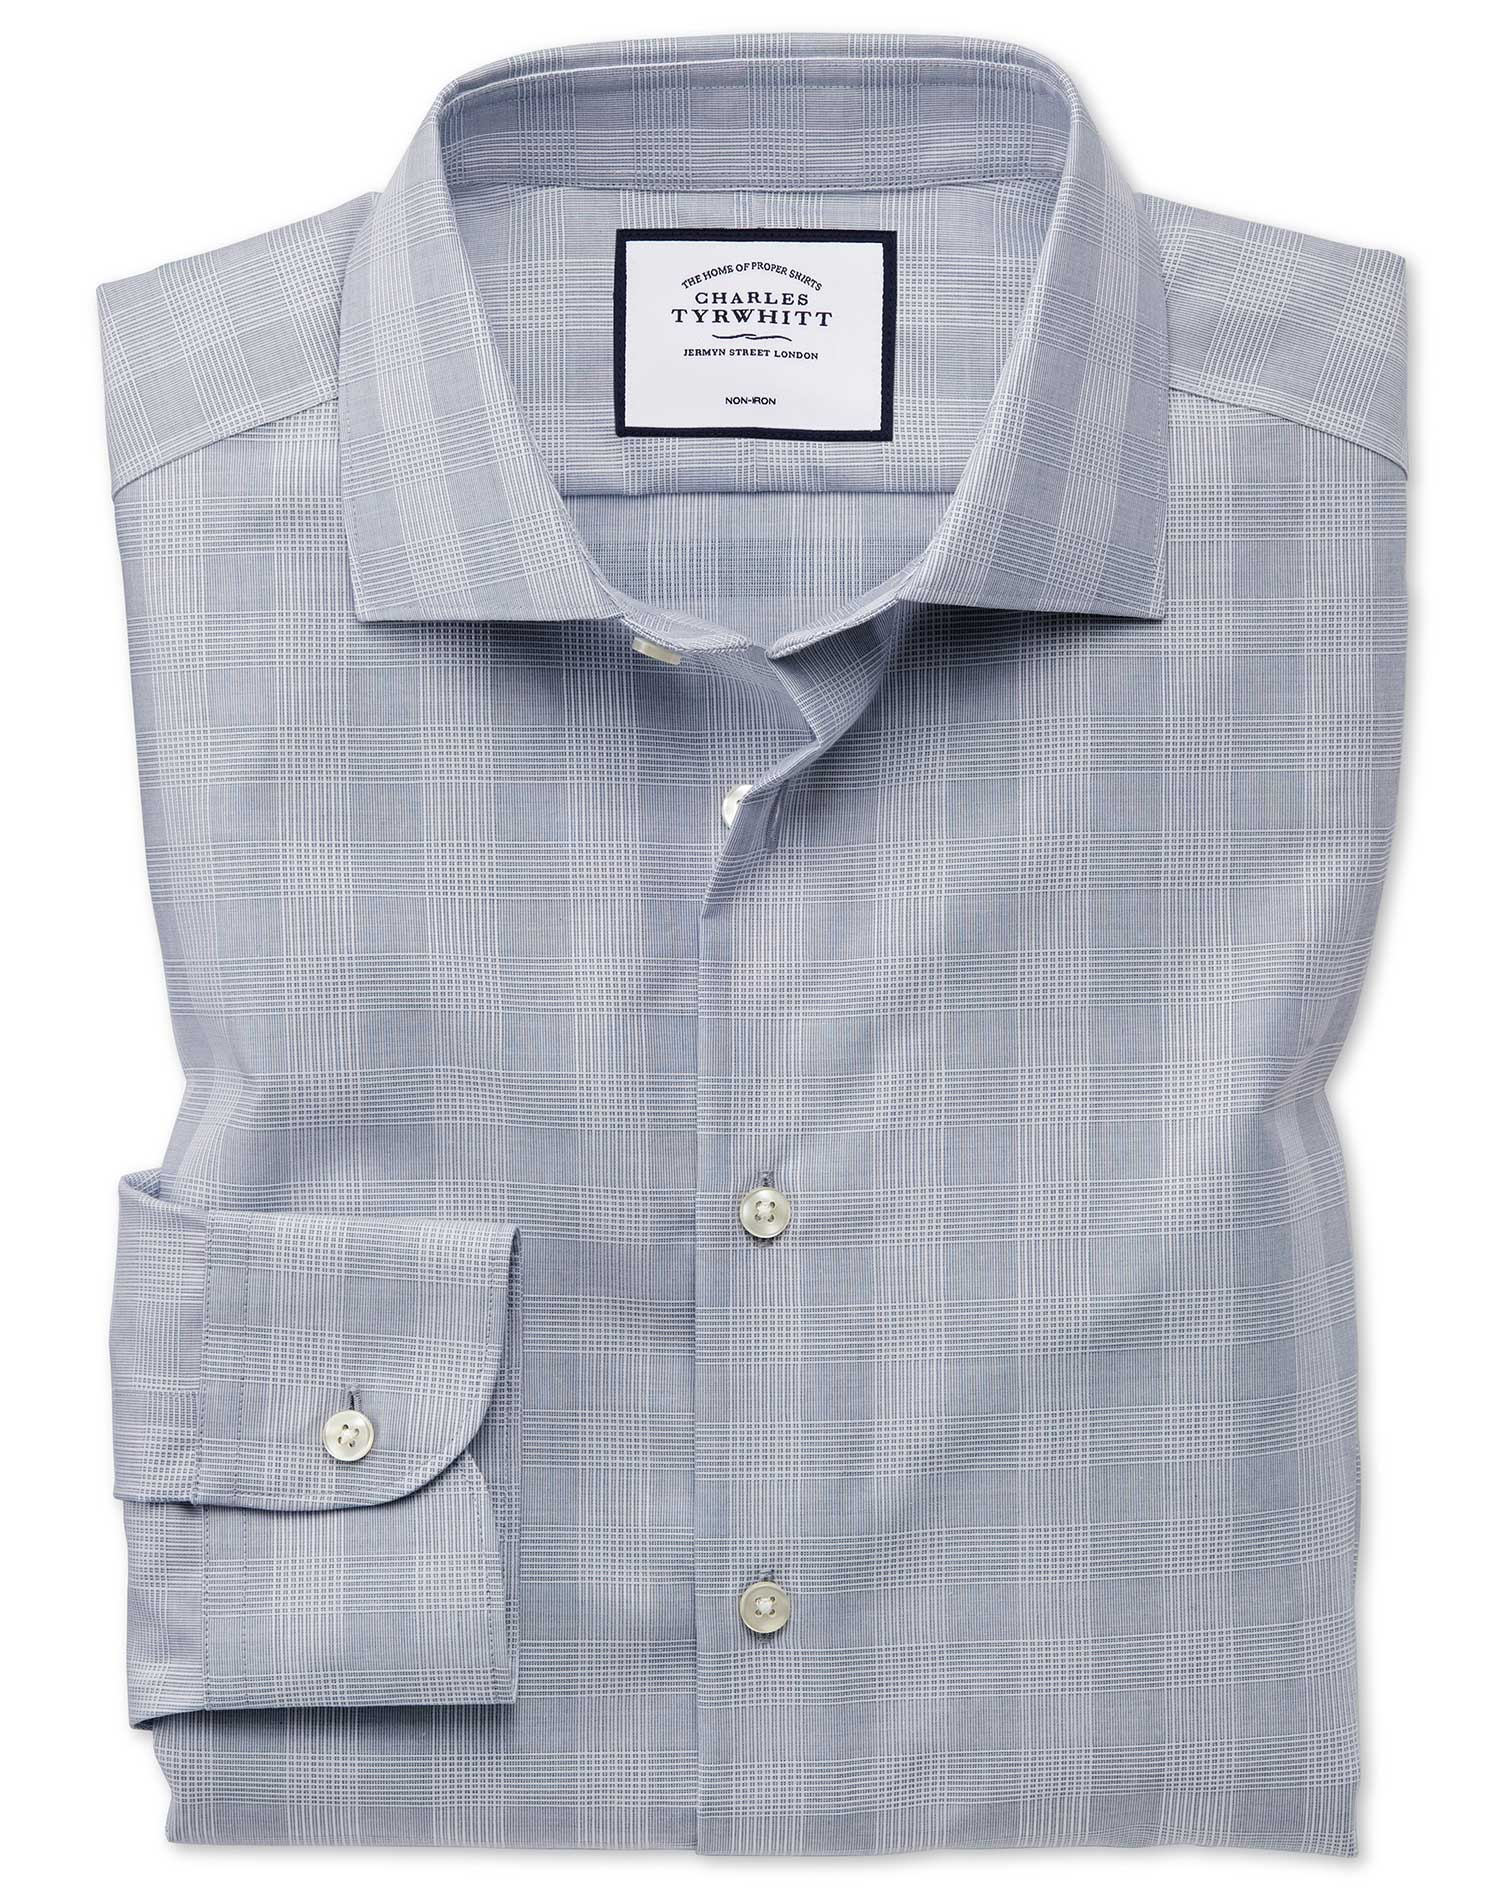 Classic Fit Business Casual Non-Iron Grey Check Cotton Formal Shirt Single Cuff Size 18/36 by Charle